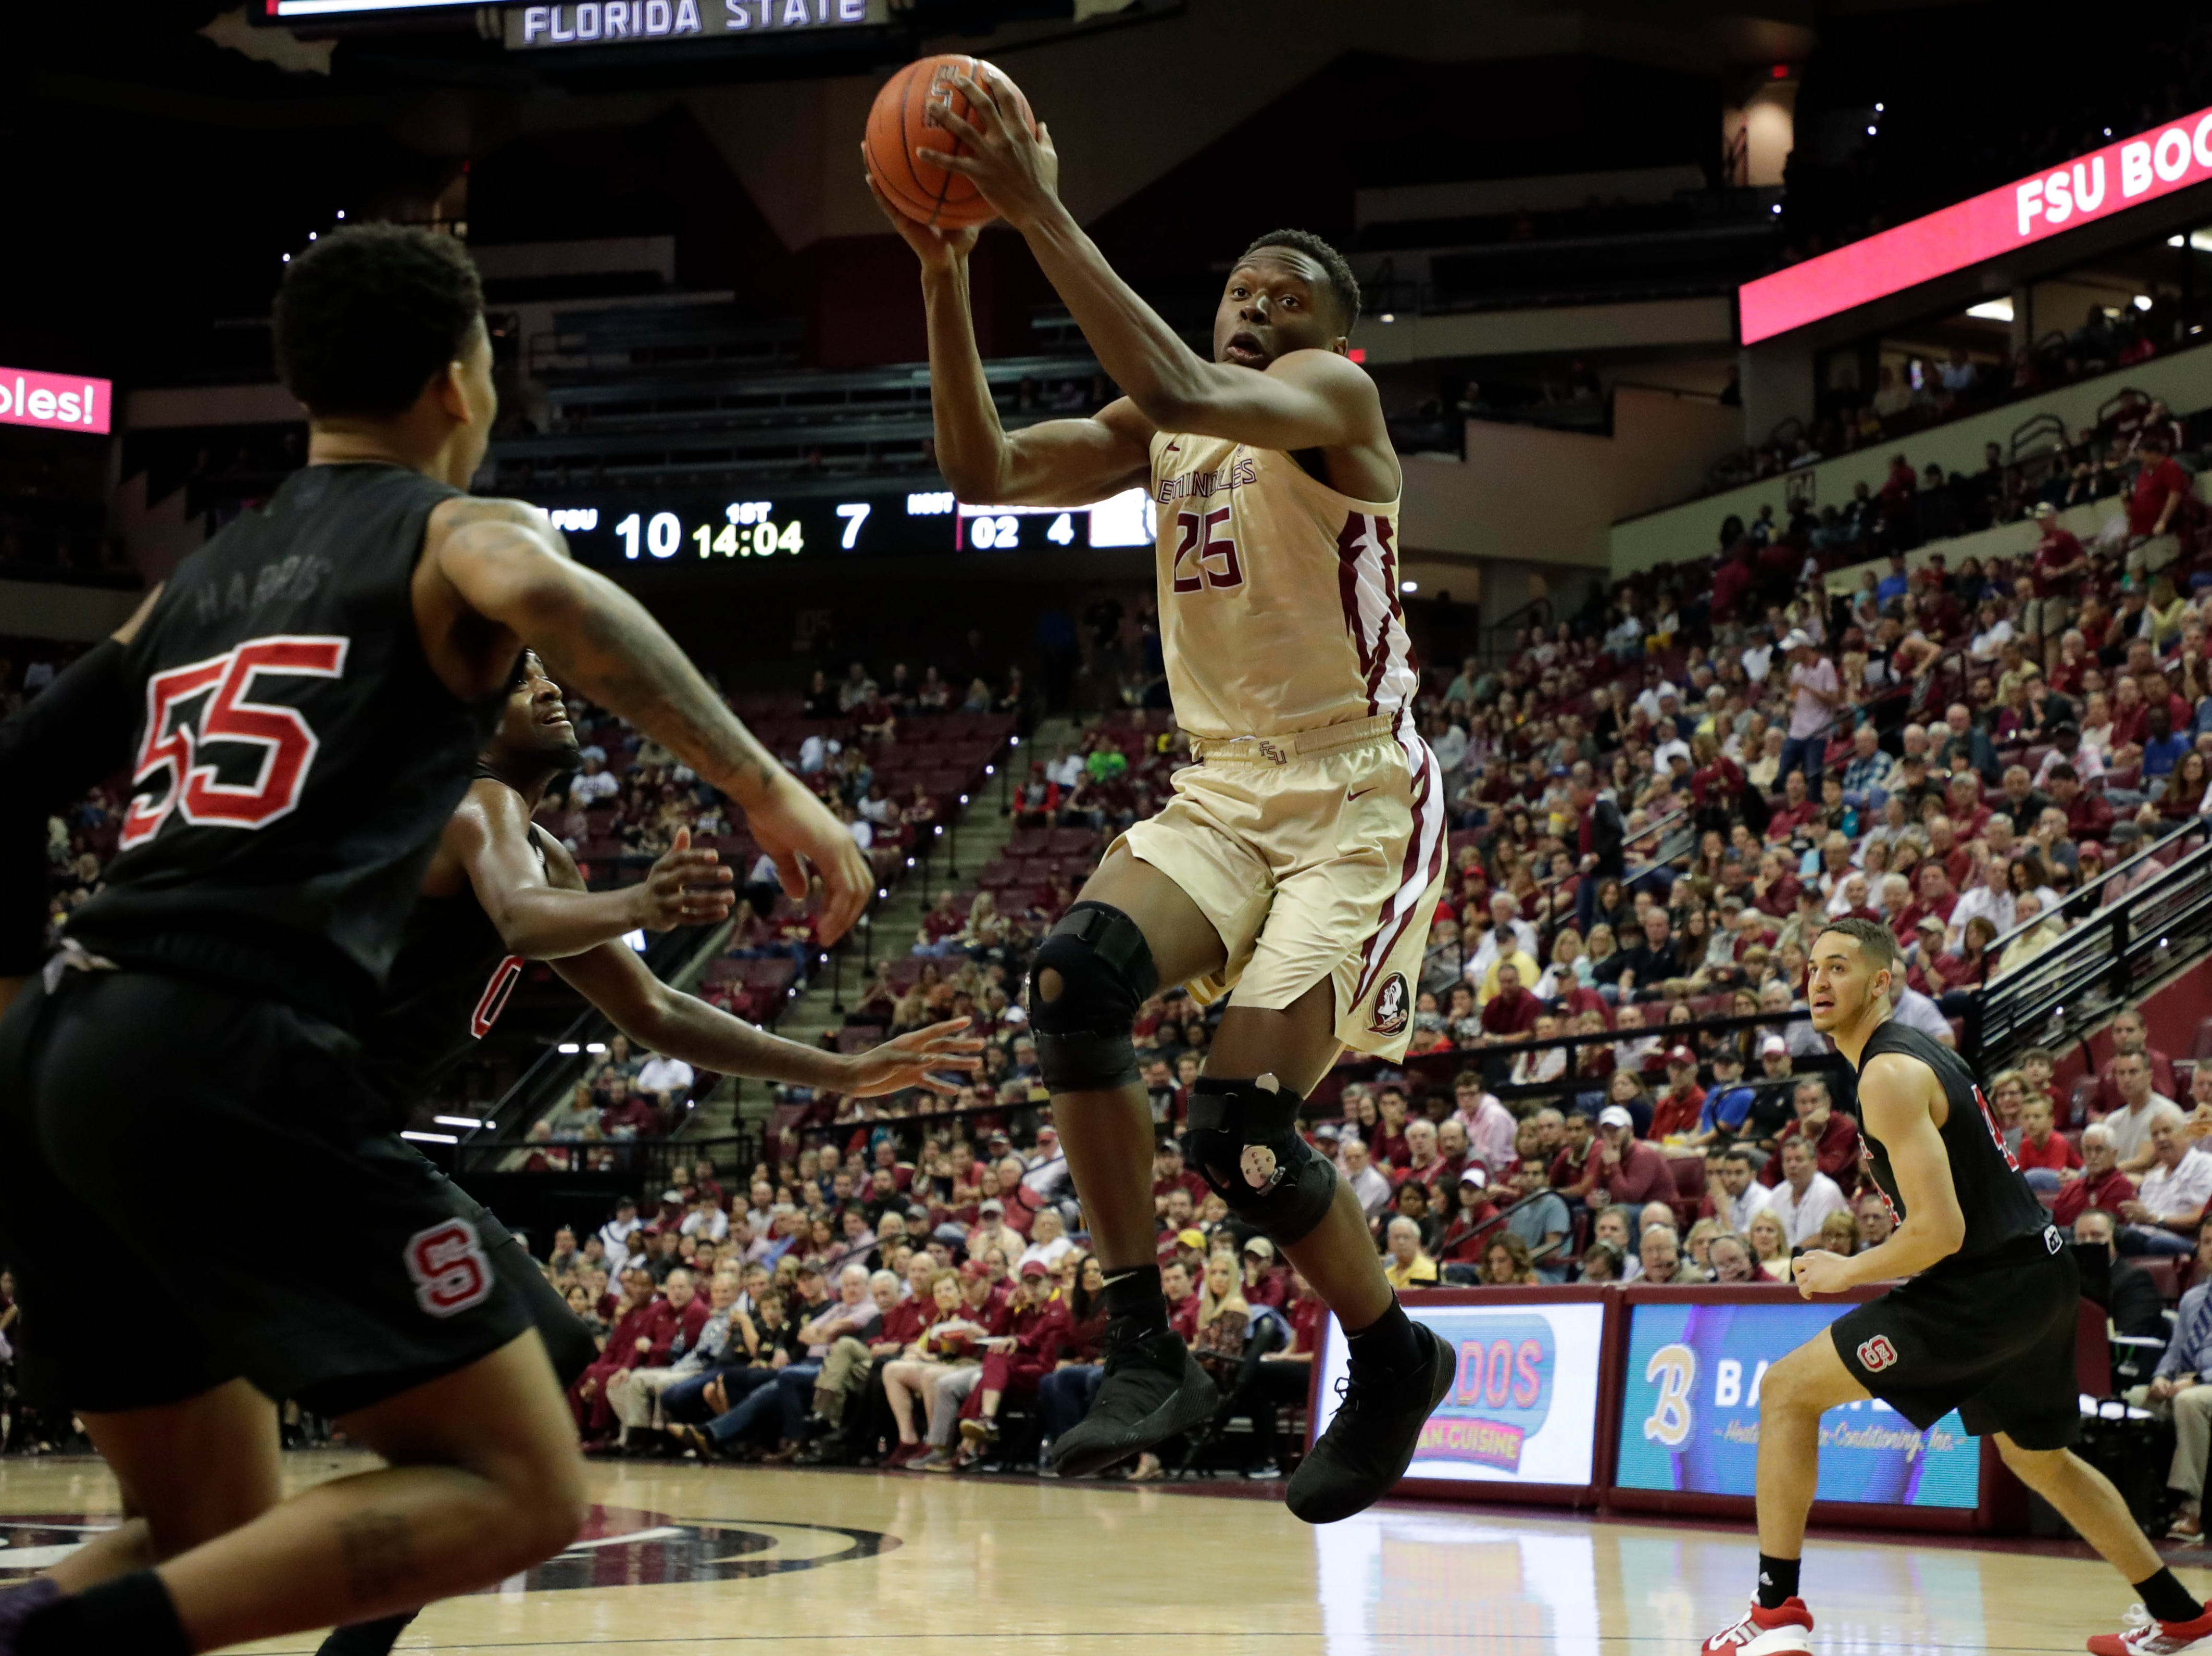 Florida State Seminoles forward Mfiondu Kabengele (25) catches a pass from Florida State Seminoles guard David Nichols (11). The Florida State Seminoles host the NC State Wolfpack at the Tucker Civic Center Saturday, March 2, 2019.